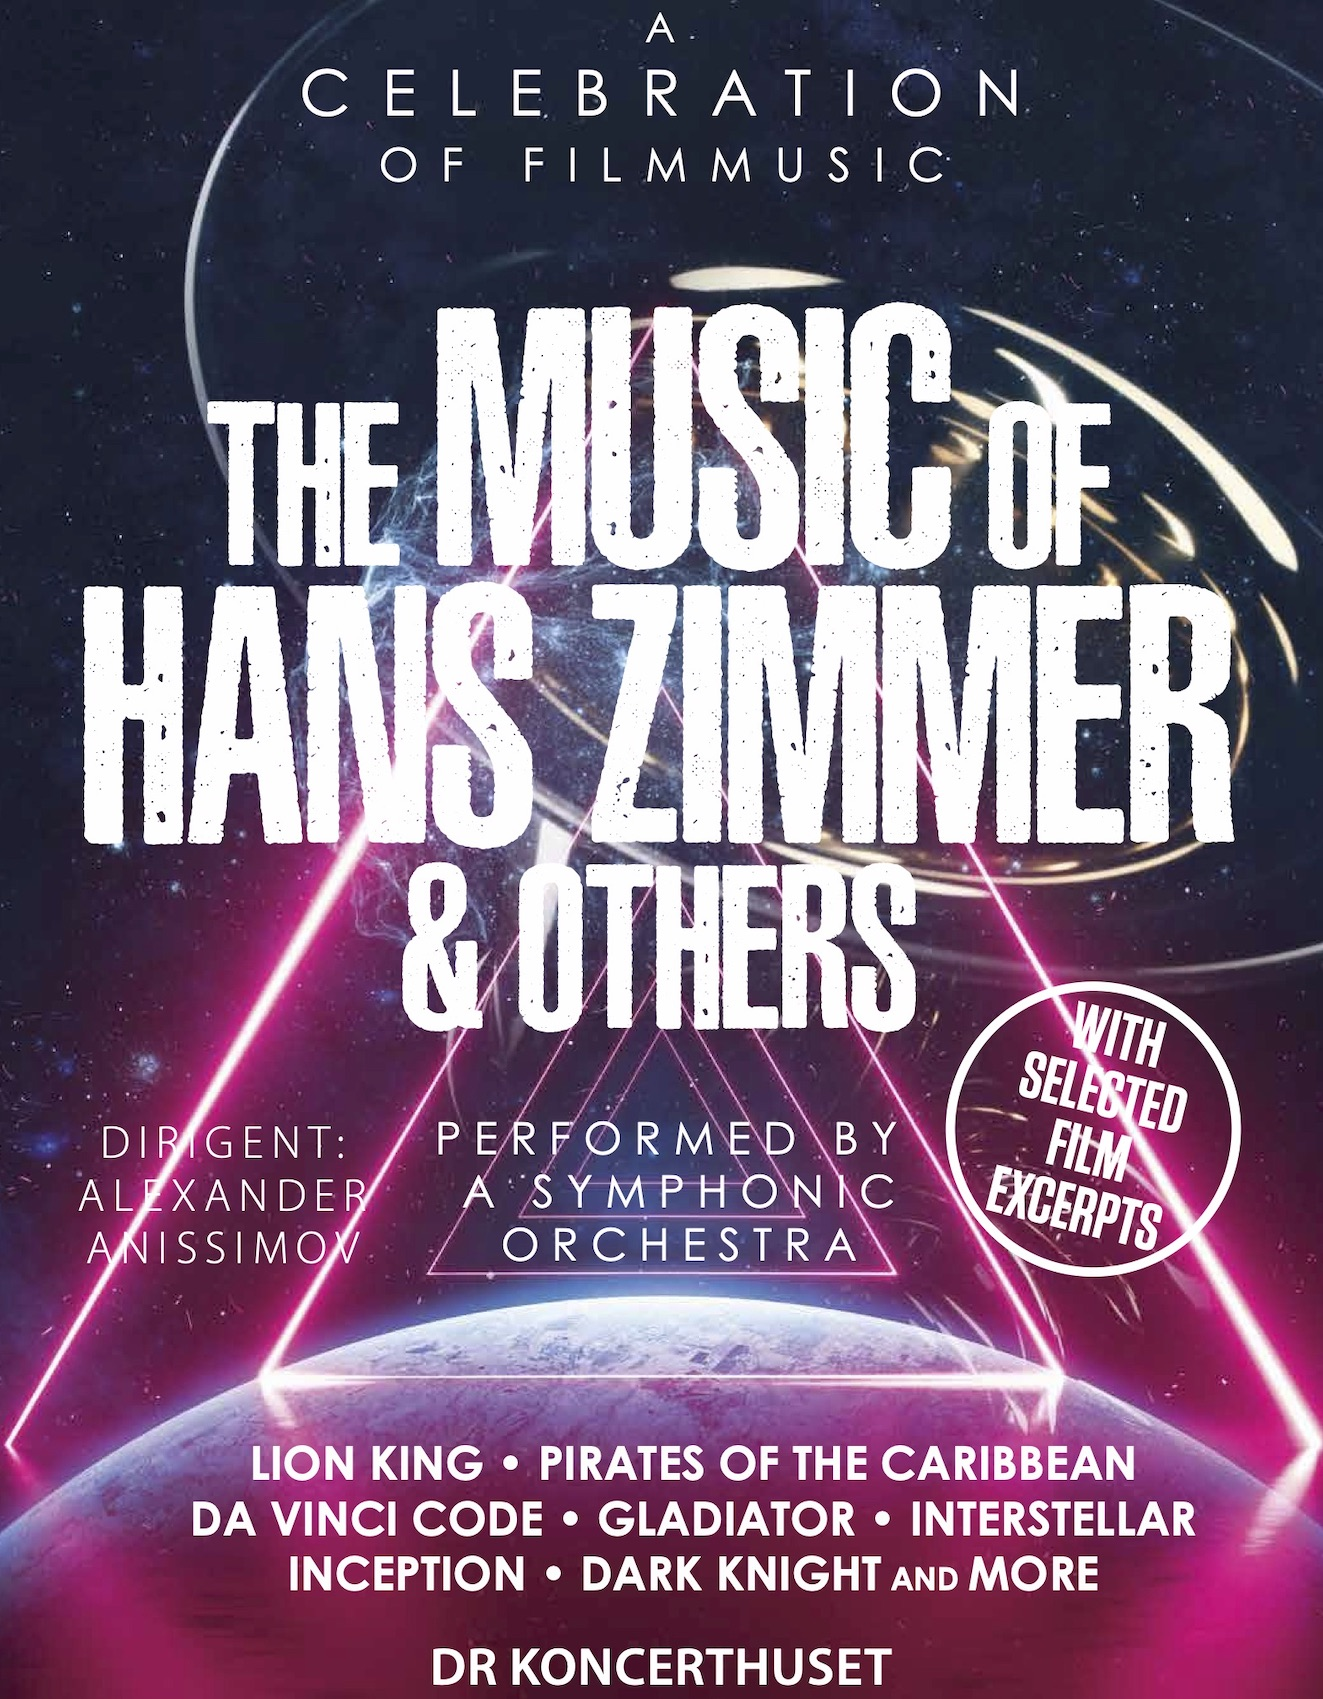 HANS ZIMMER & OTHERS